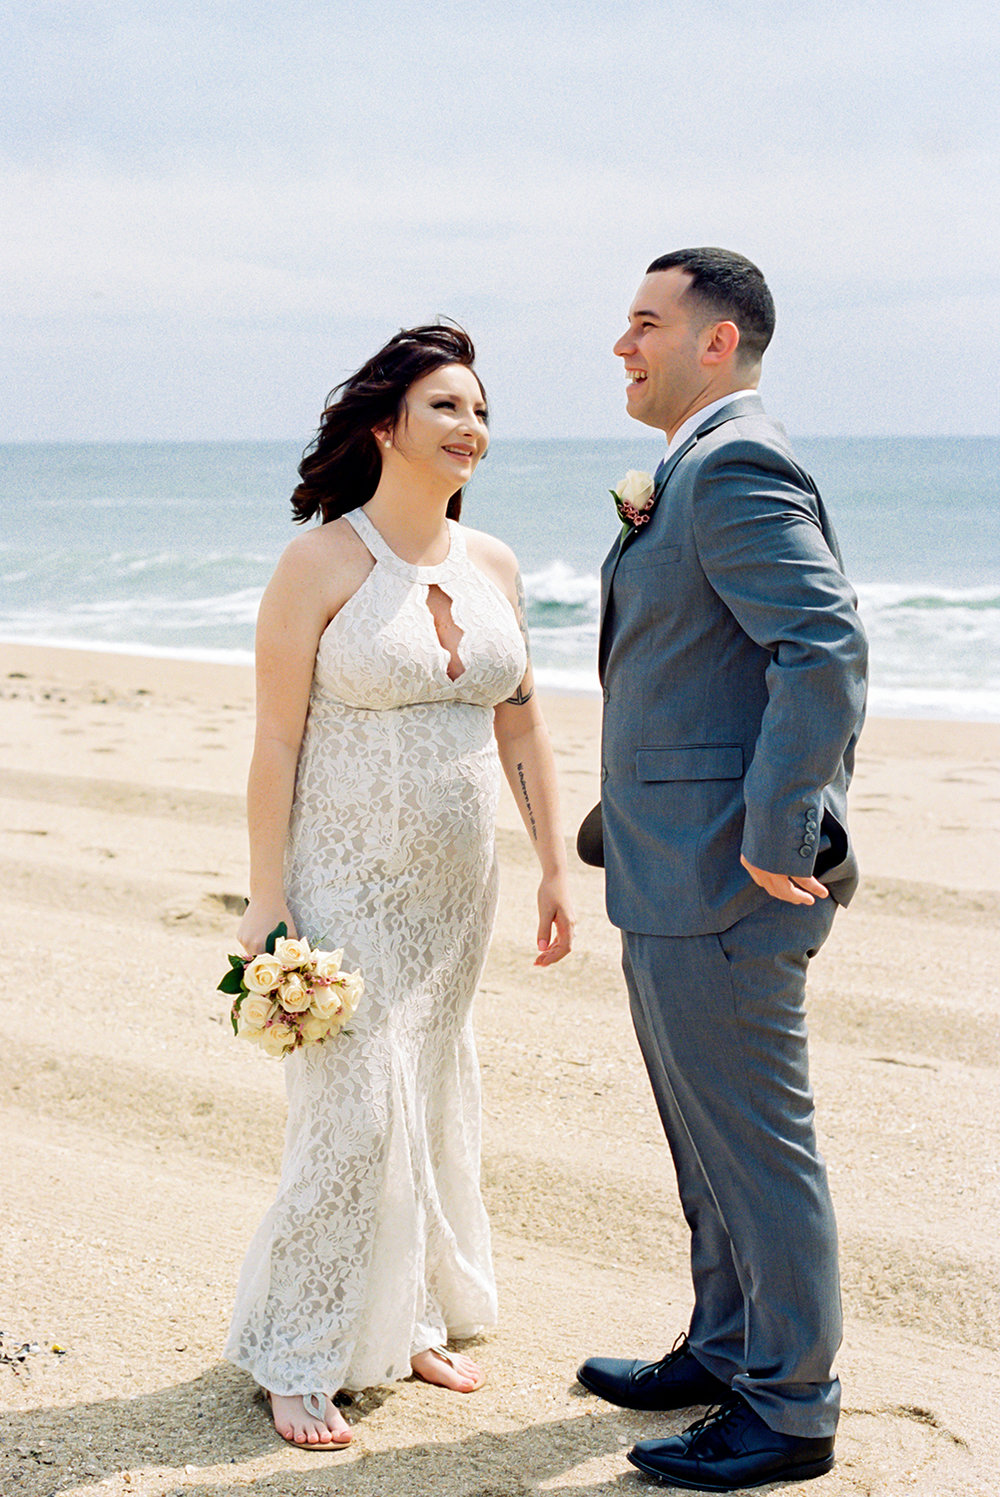 Caitlyn+Anthony- Belmar Beach Elopement- New Jersey Weddings- Olivia Christina Photo-170.jpg